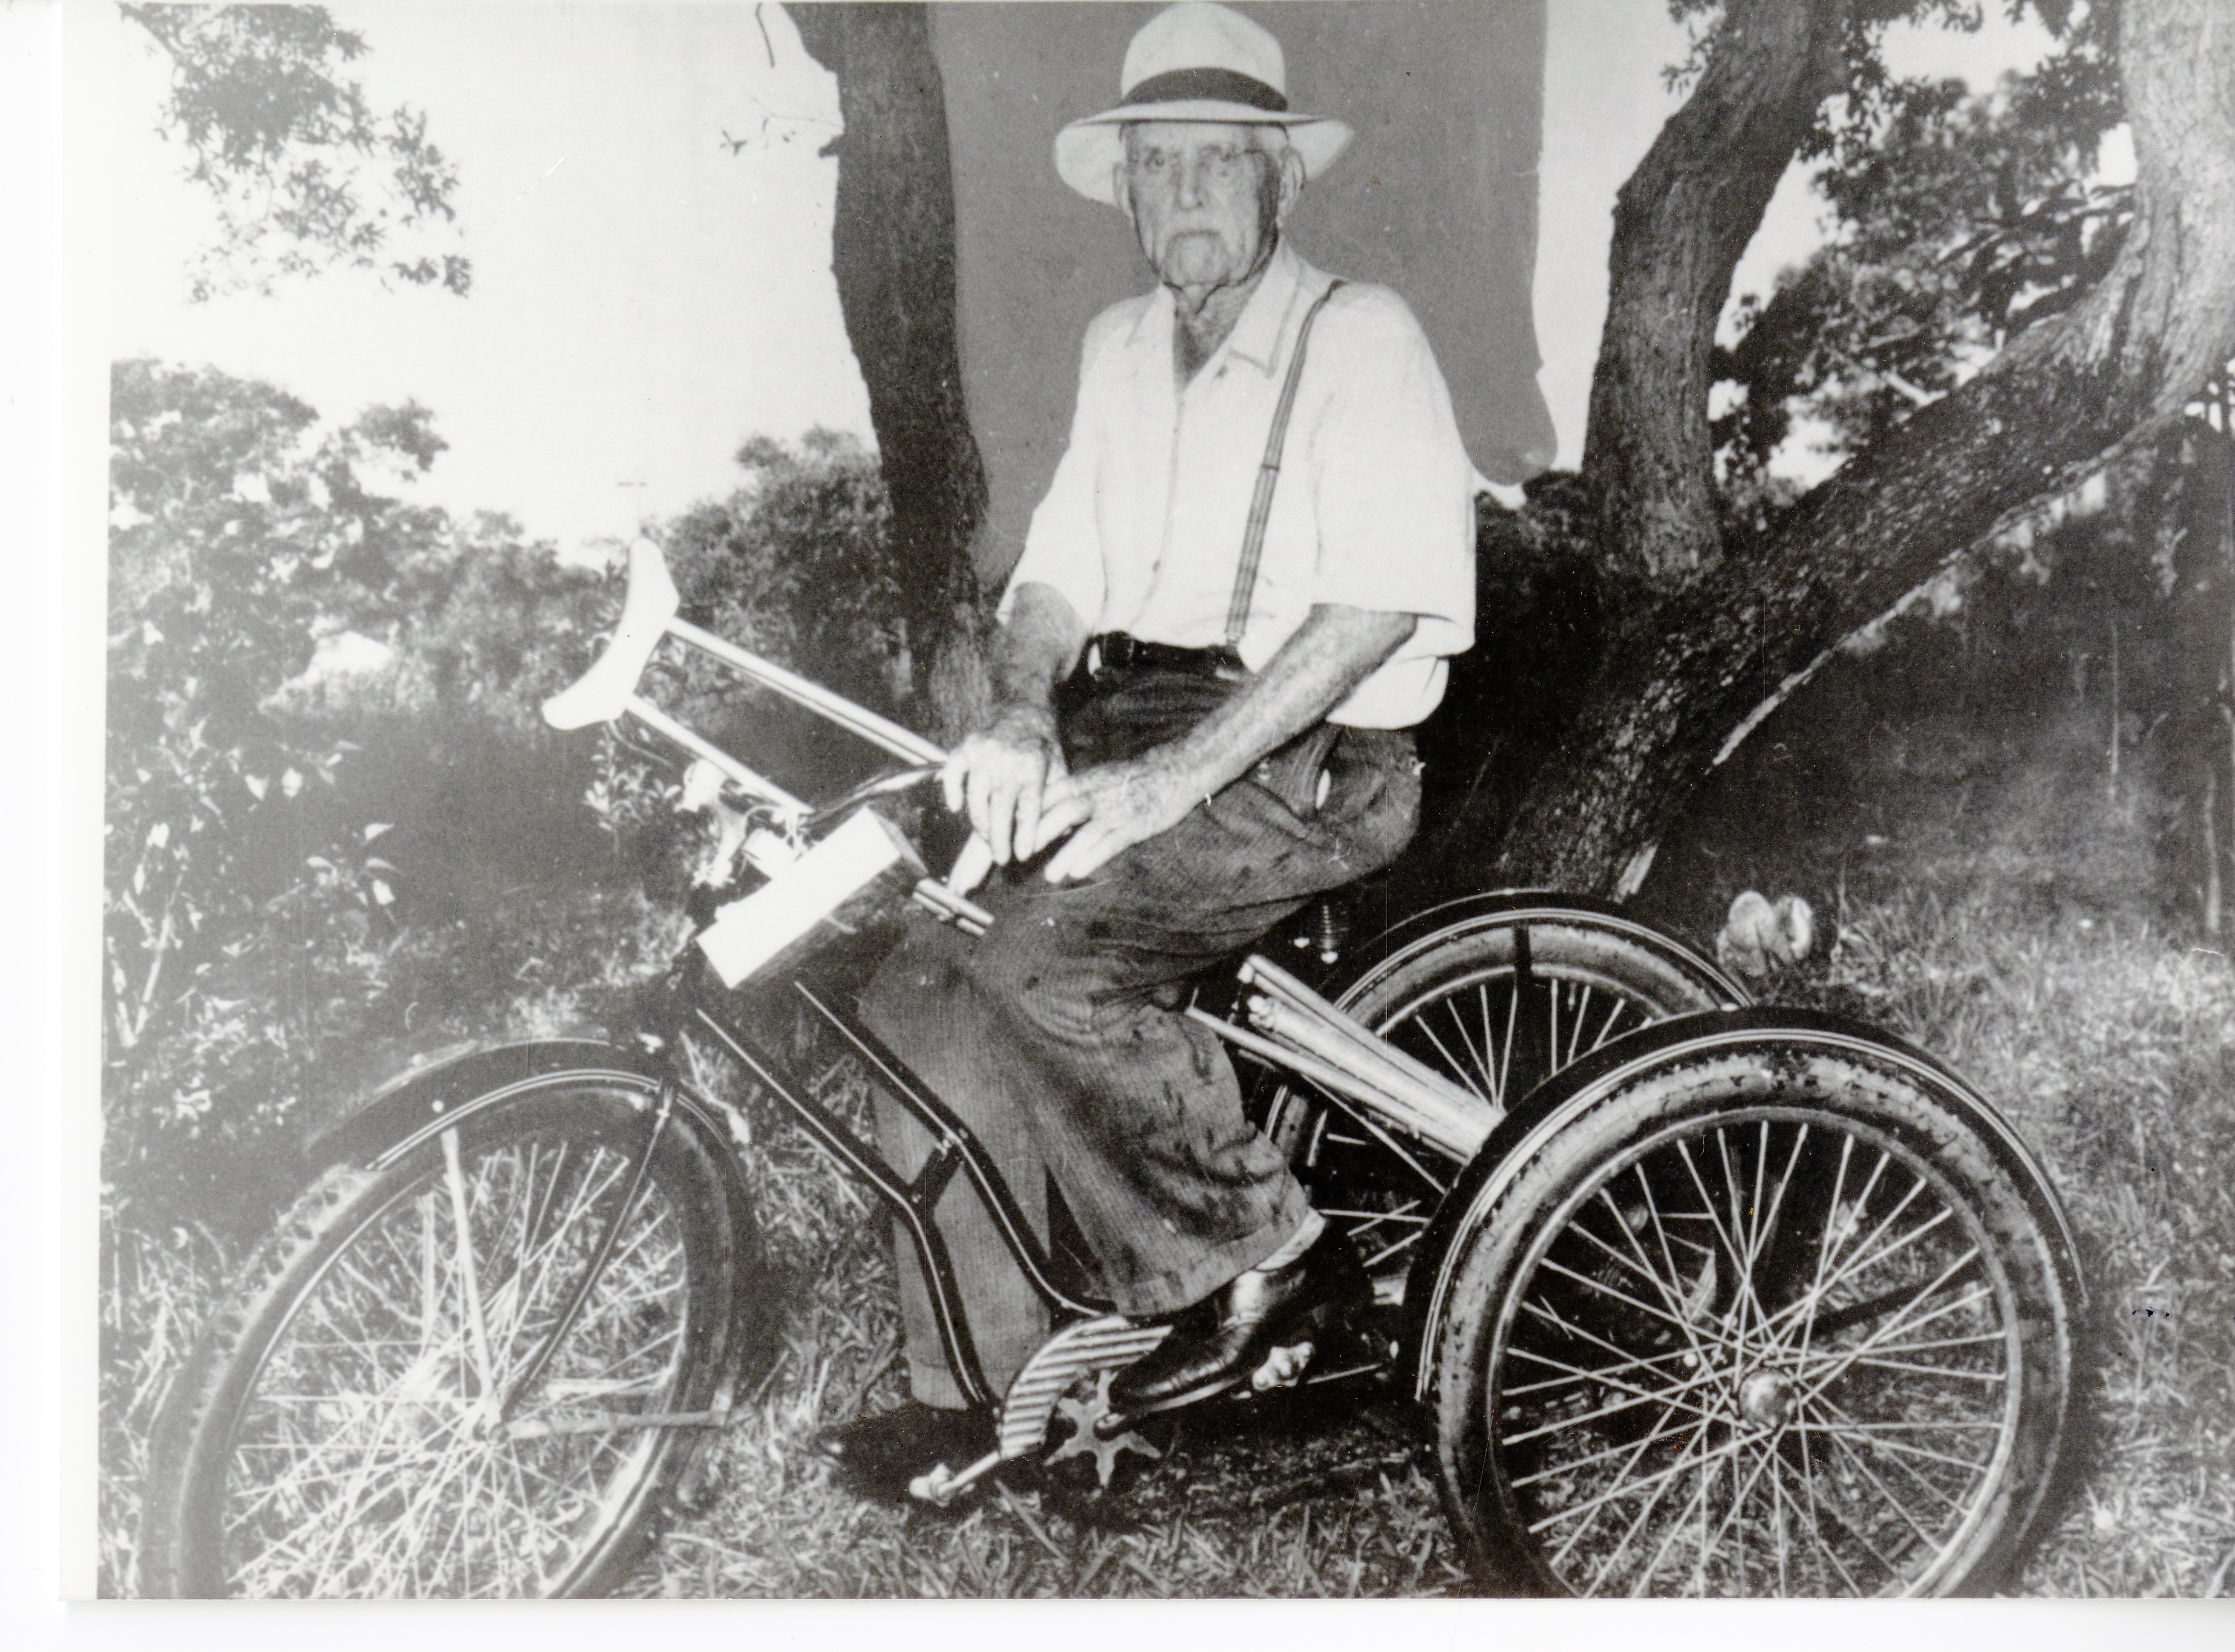 Jefferson T. Lowe on a bicycle, circa 1950.